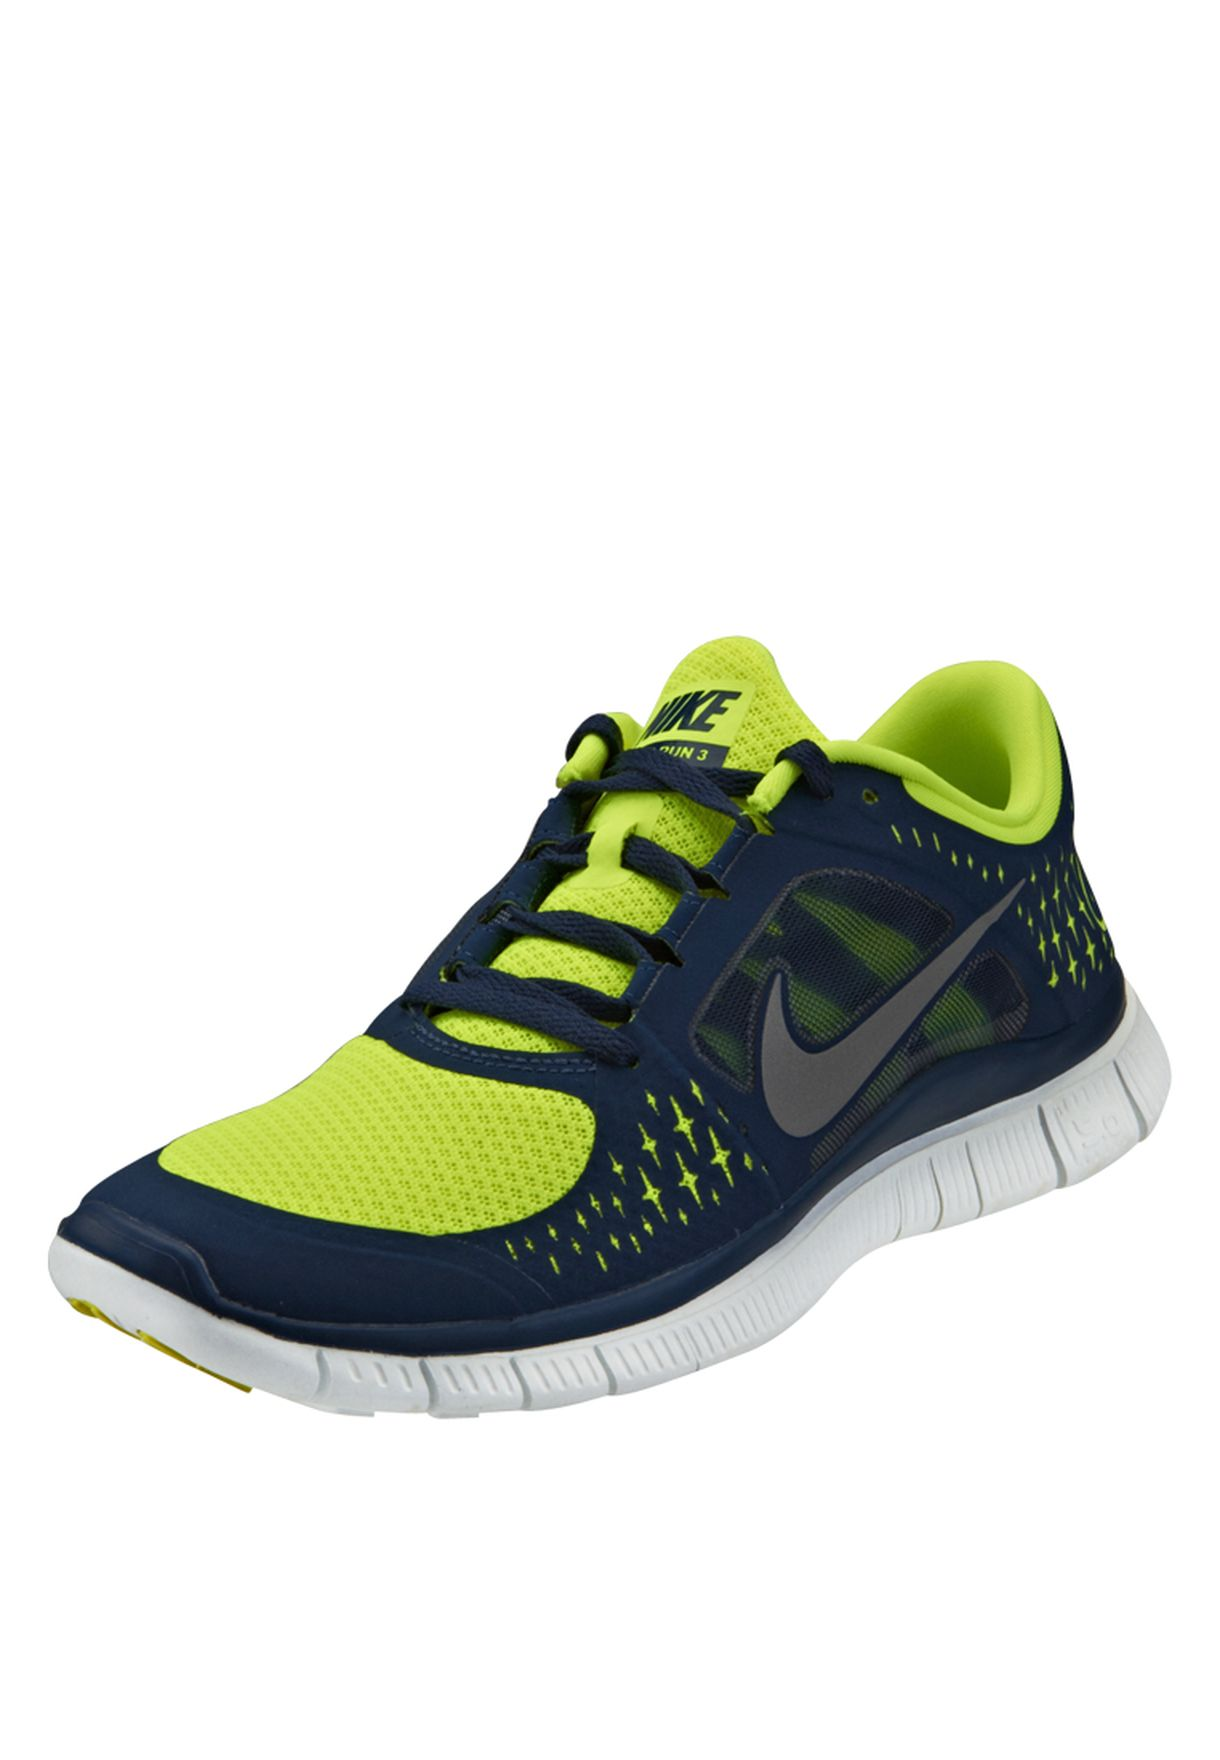 793f6182faad2 Shop Nike blue Nike Free Run Trainers 510642-704 for Men in Oman ...